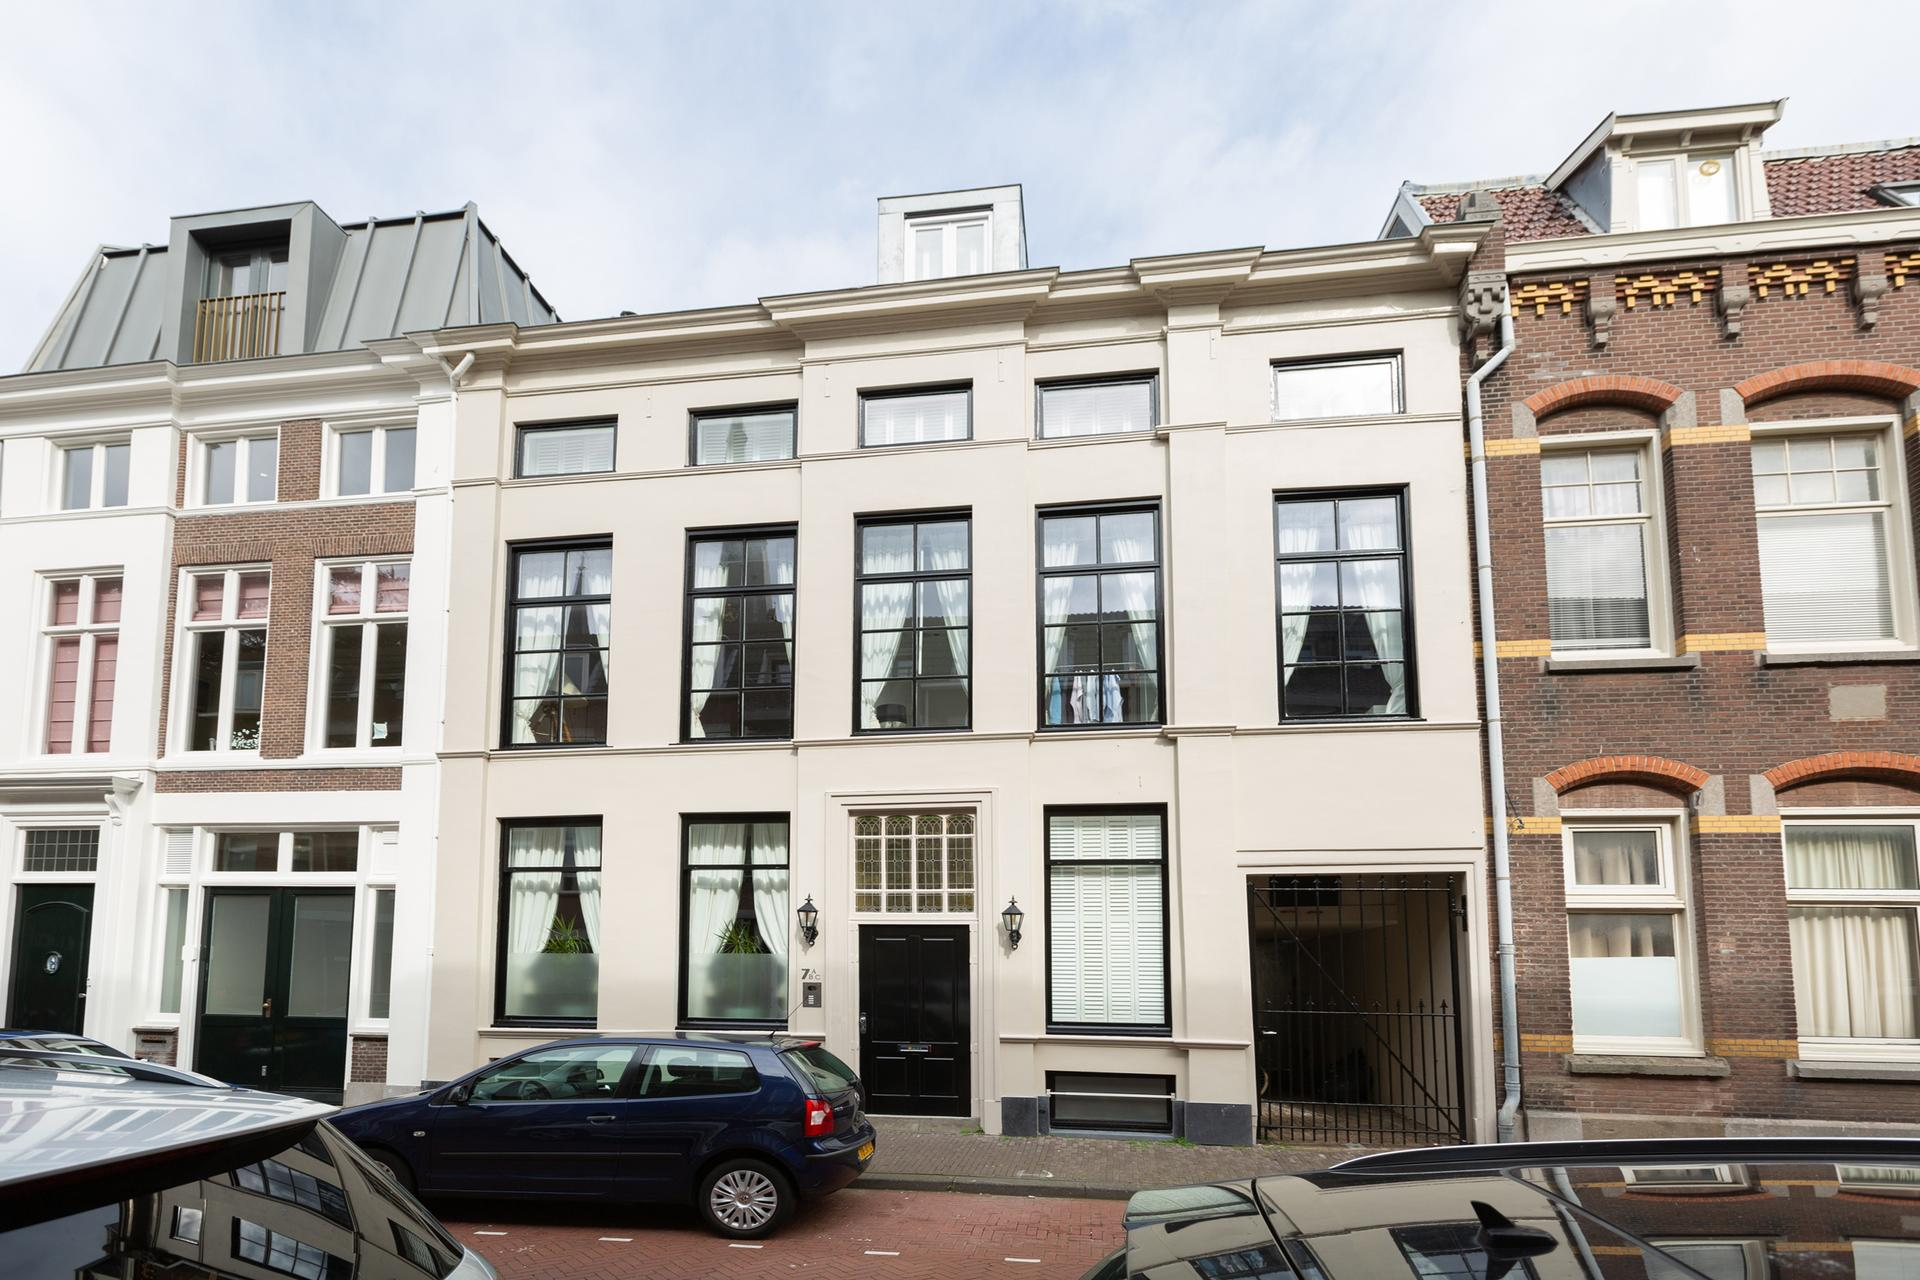 Bekijk de foto van: Willemstraat 7 , 2514 HJ in Den haag - The Hague Real Estate Services